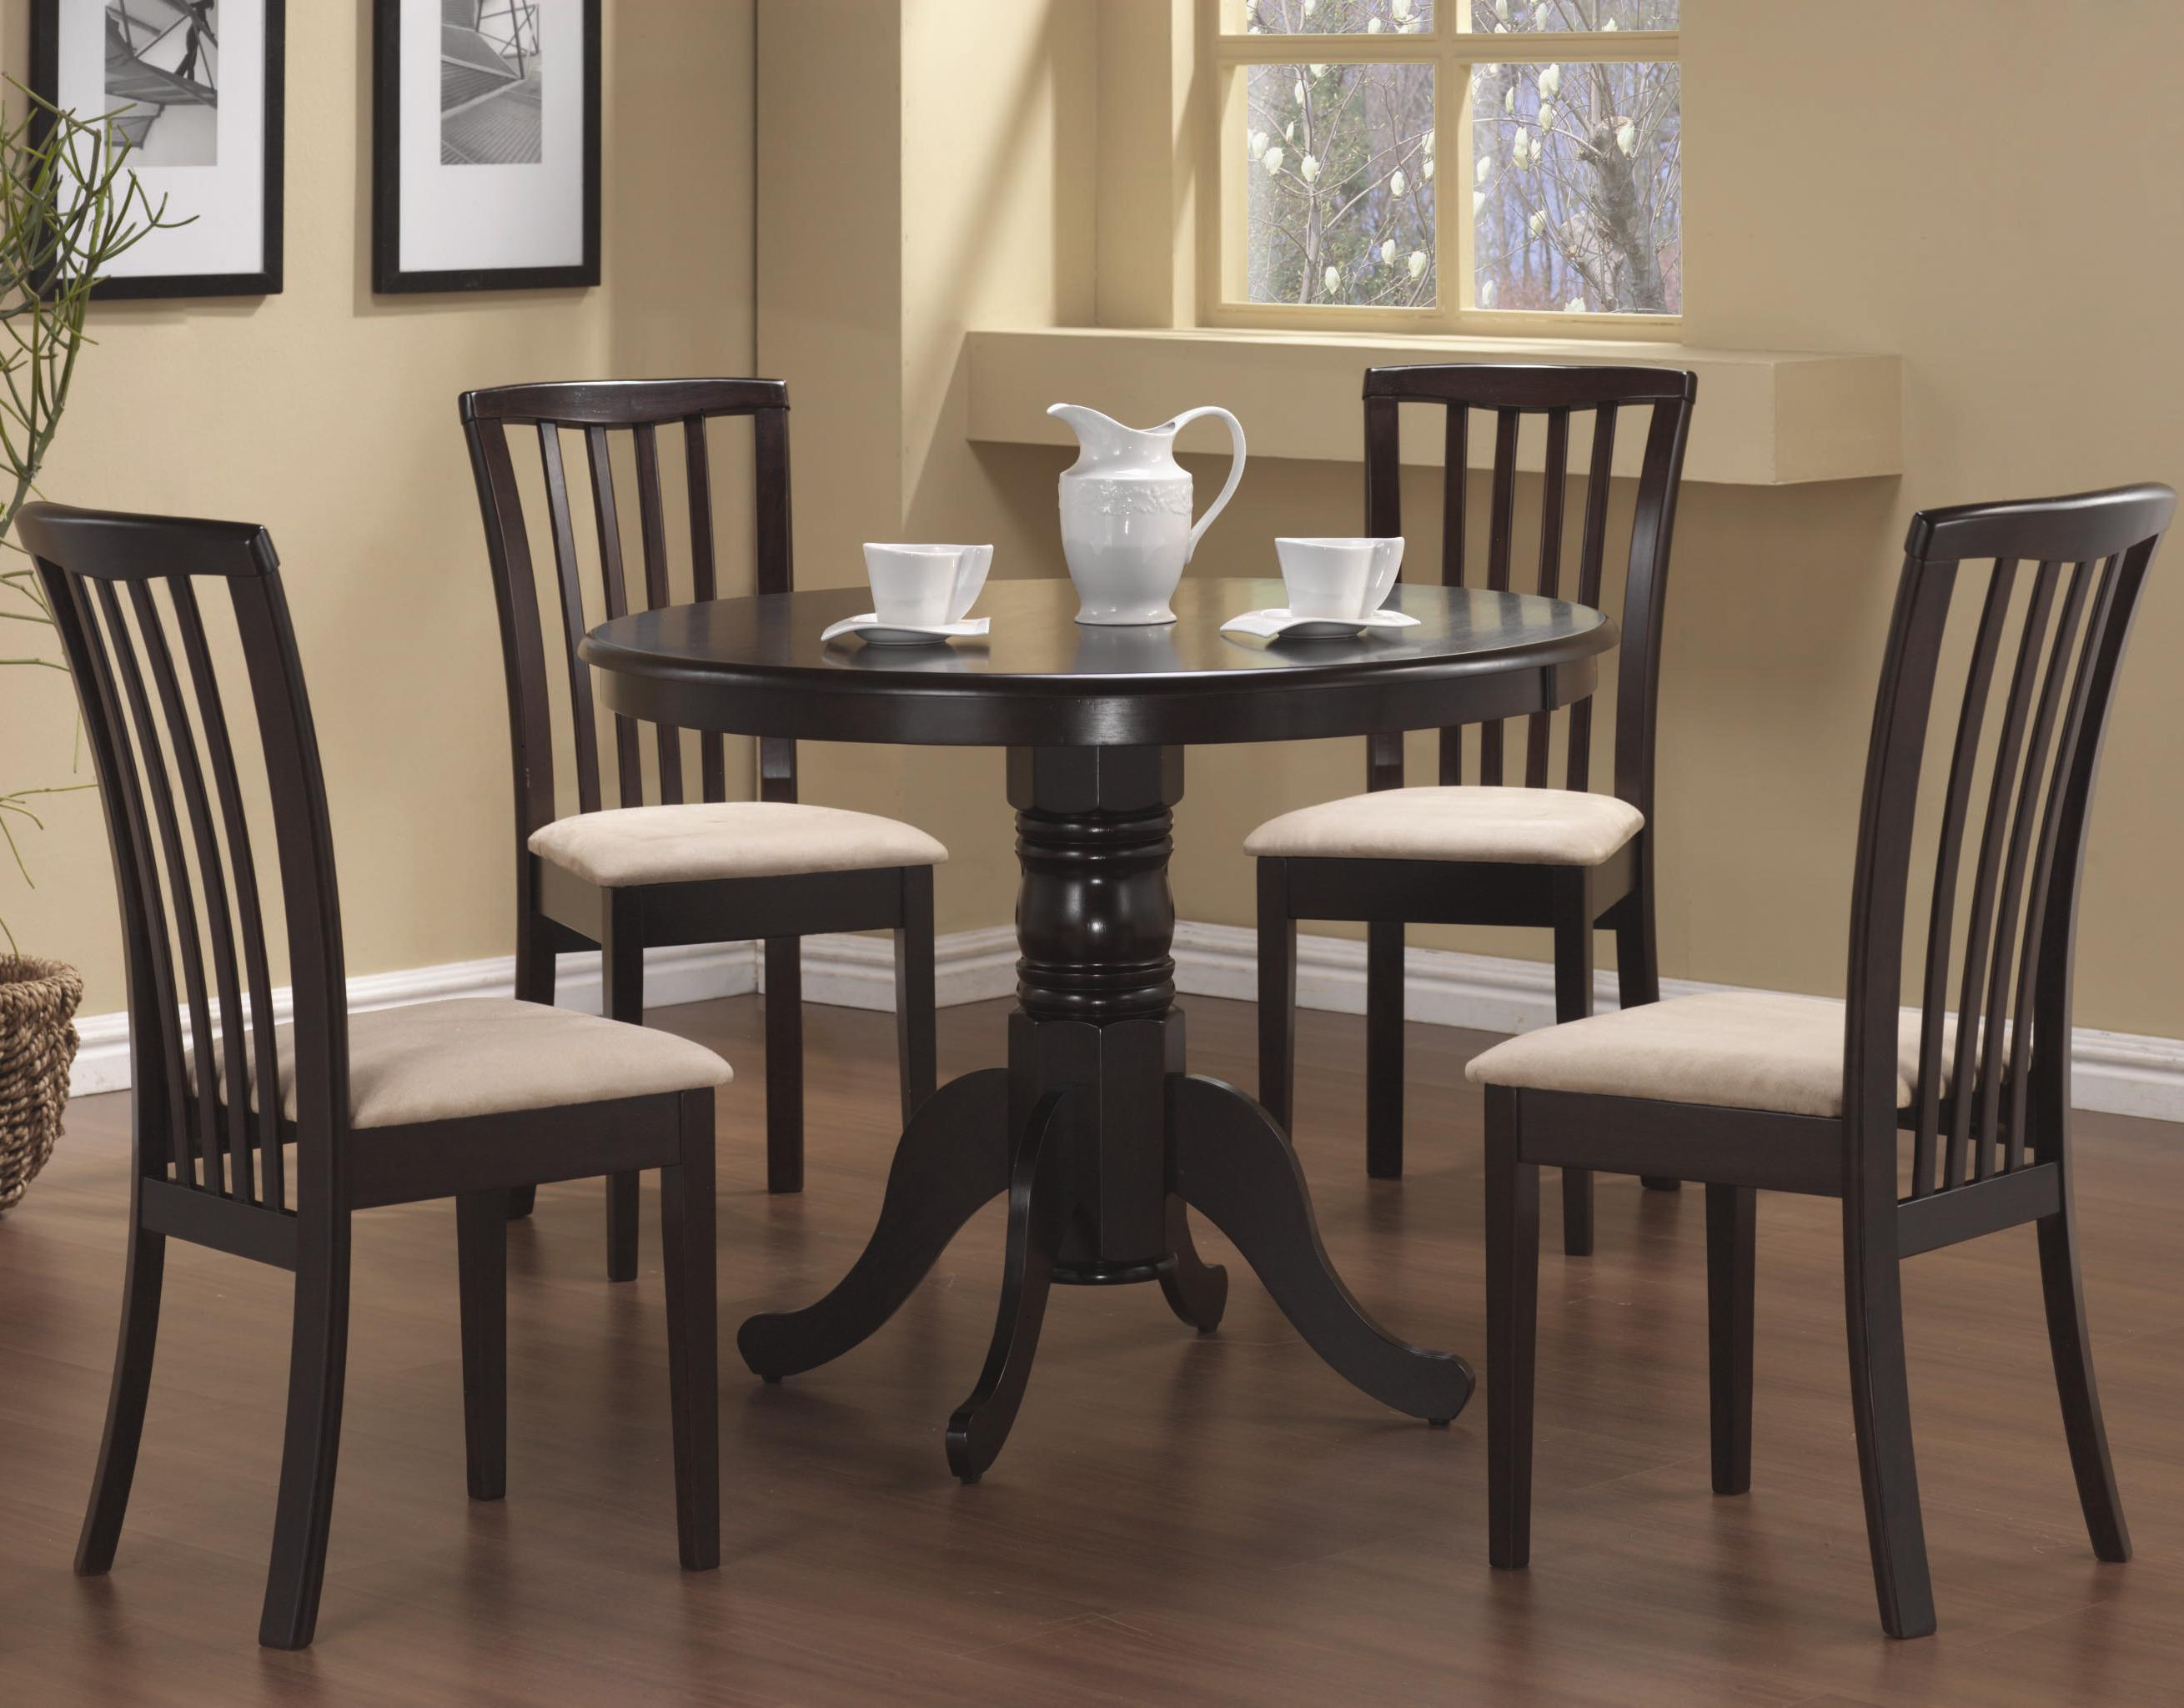 Coaster Brannan 5 Piece Dining Set - Item Number: 101081+4x2